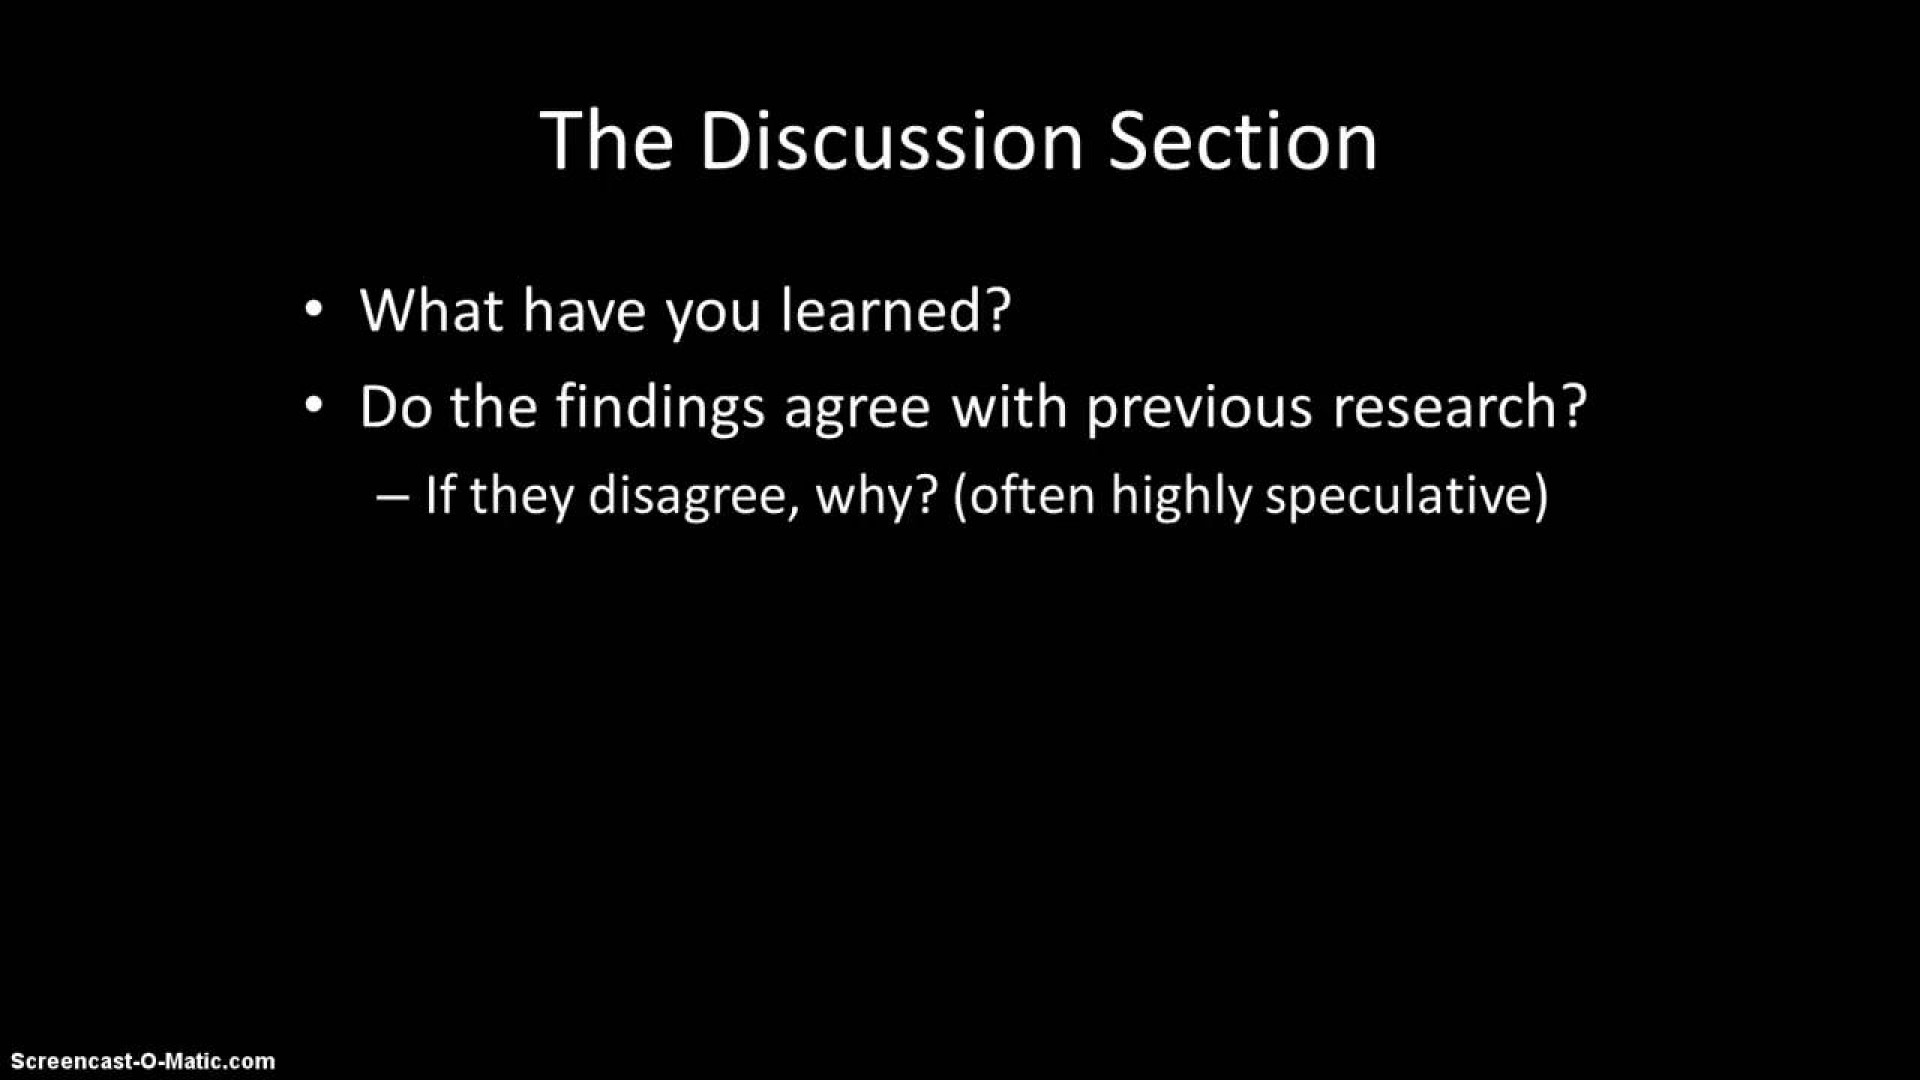 004 Maxresdefault How To Write The Discussion Section Of Research Paper Amazing A Apa 1920